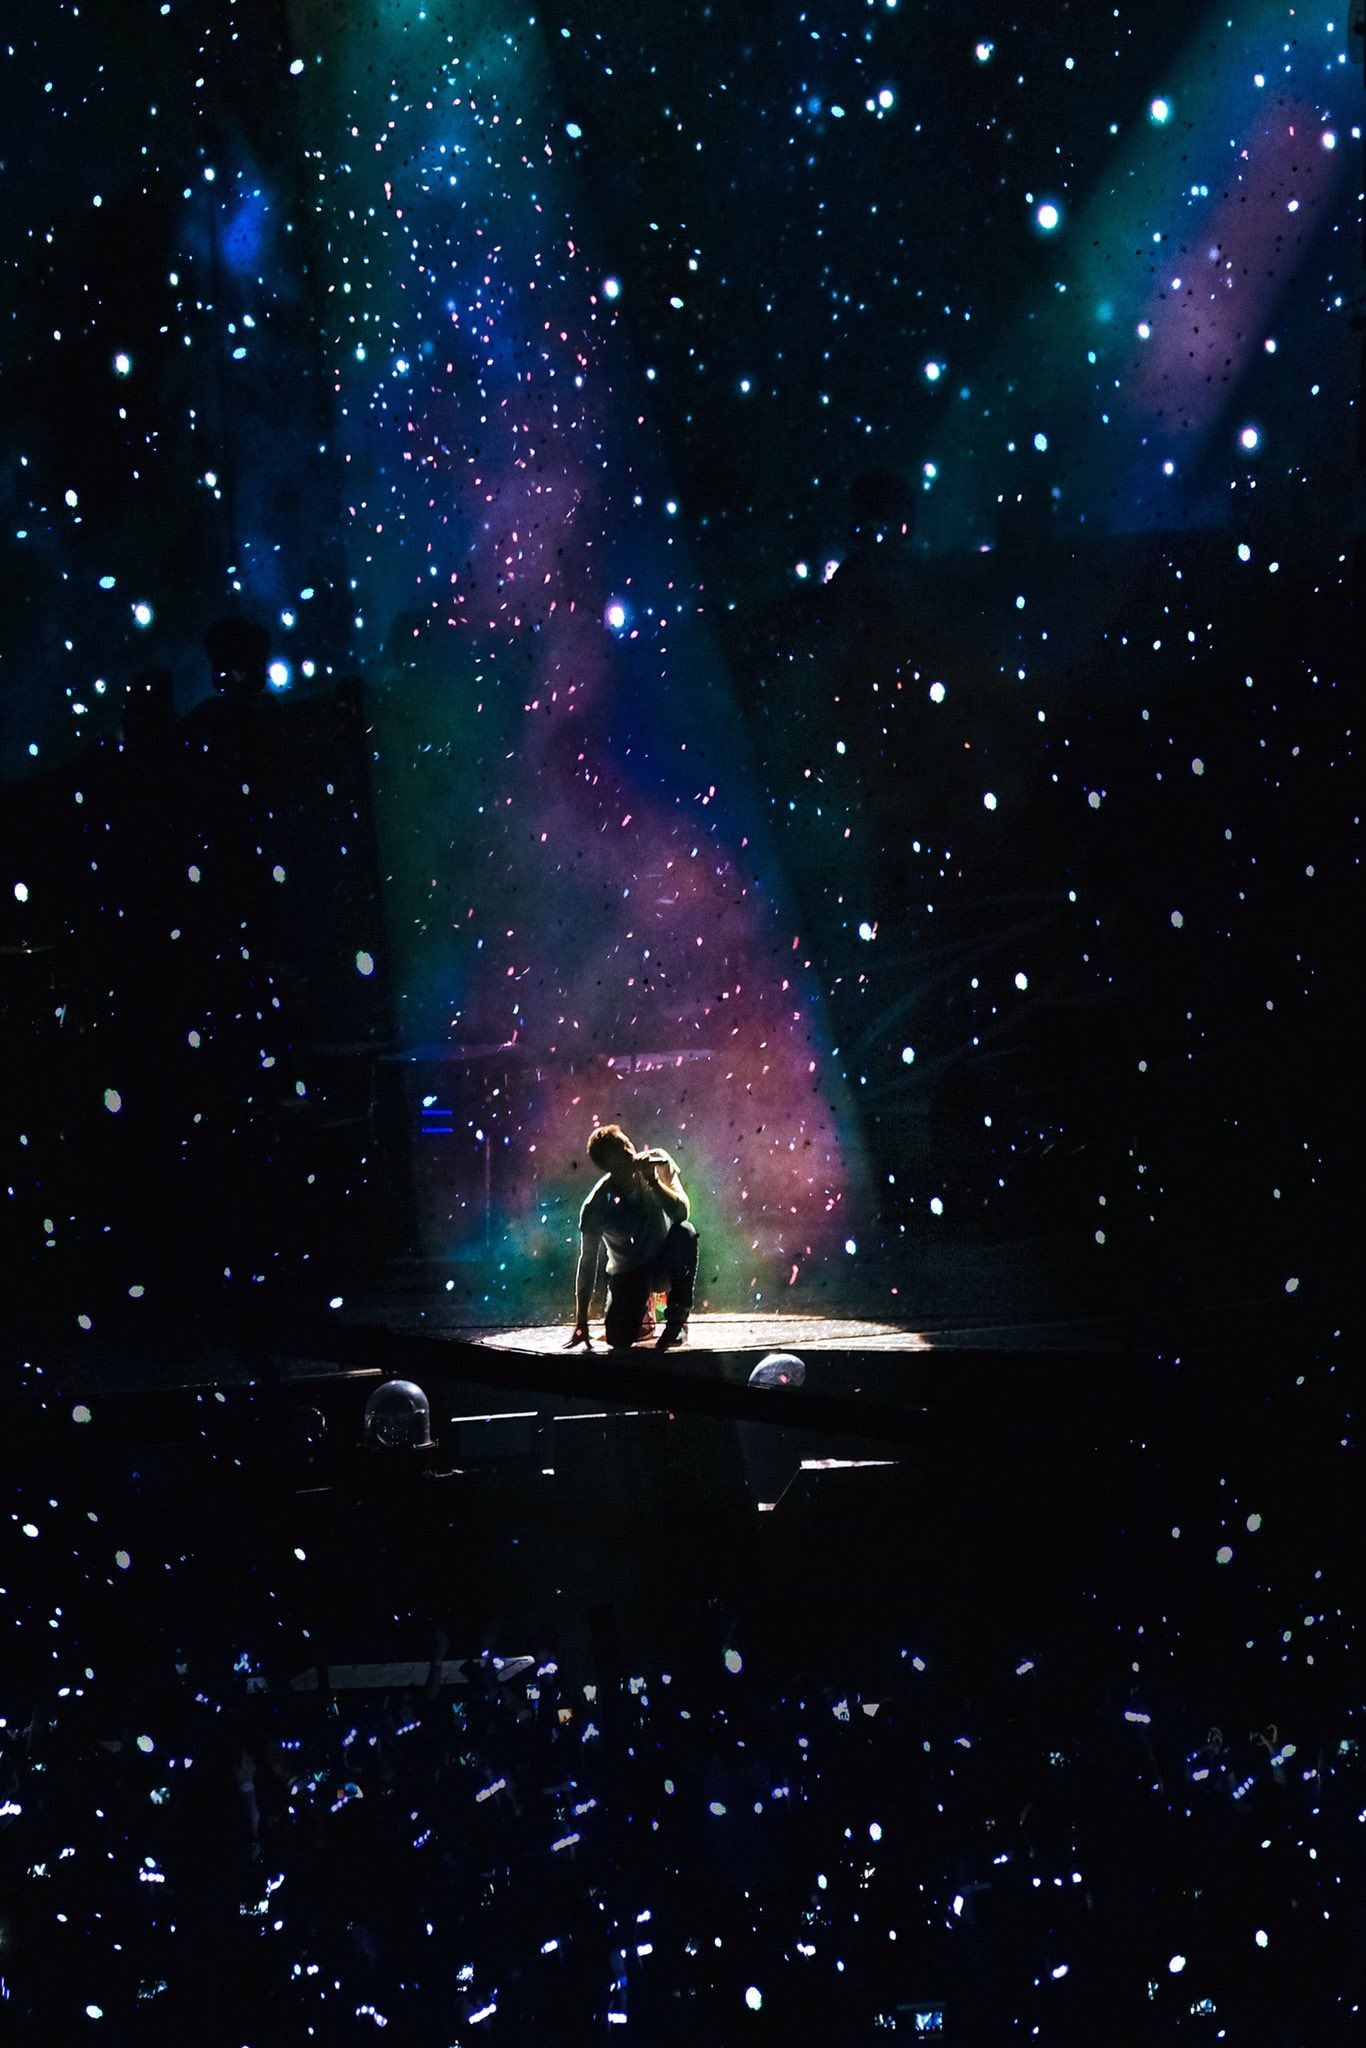 Chris Martin And A Sky Full Of Stars Xylobands Coldplay Ahfod Tour Cardiff 11 July 2017 Coldplay Art Coldplay Coldplay Wallpaper